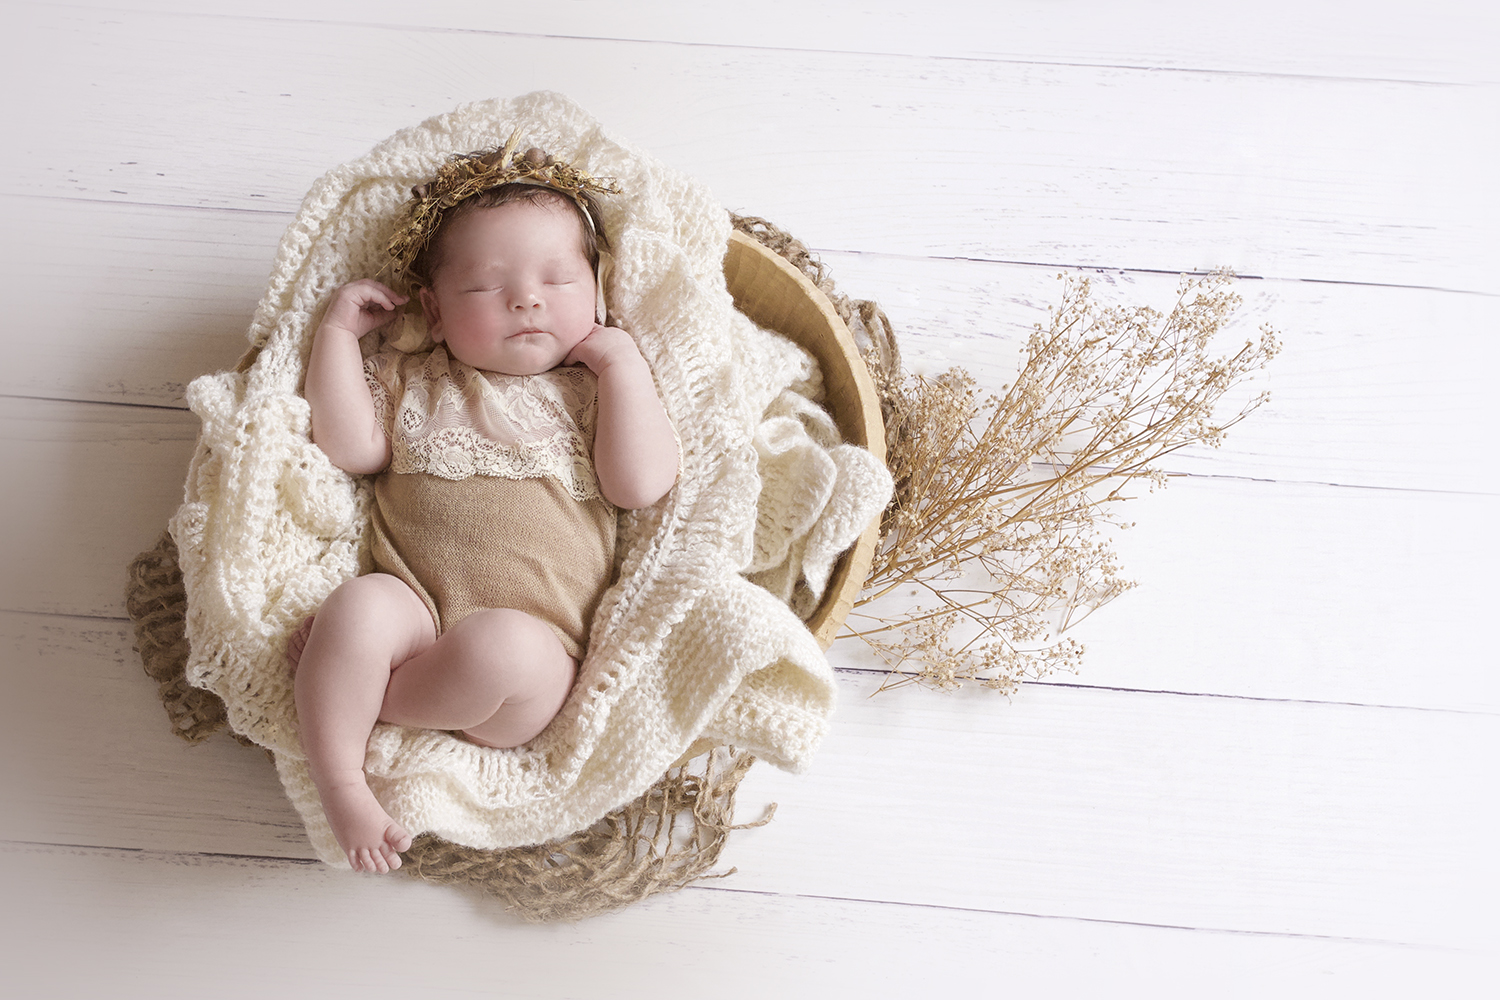 Newborn baby girl sleeping in oval wooden bowl with cream knit blankets jute layer and dried flowers with baby wearing brown and cream lace romper and brown dried flower and gumnut headband